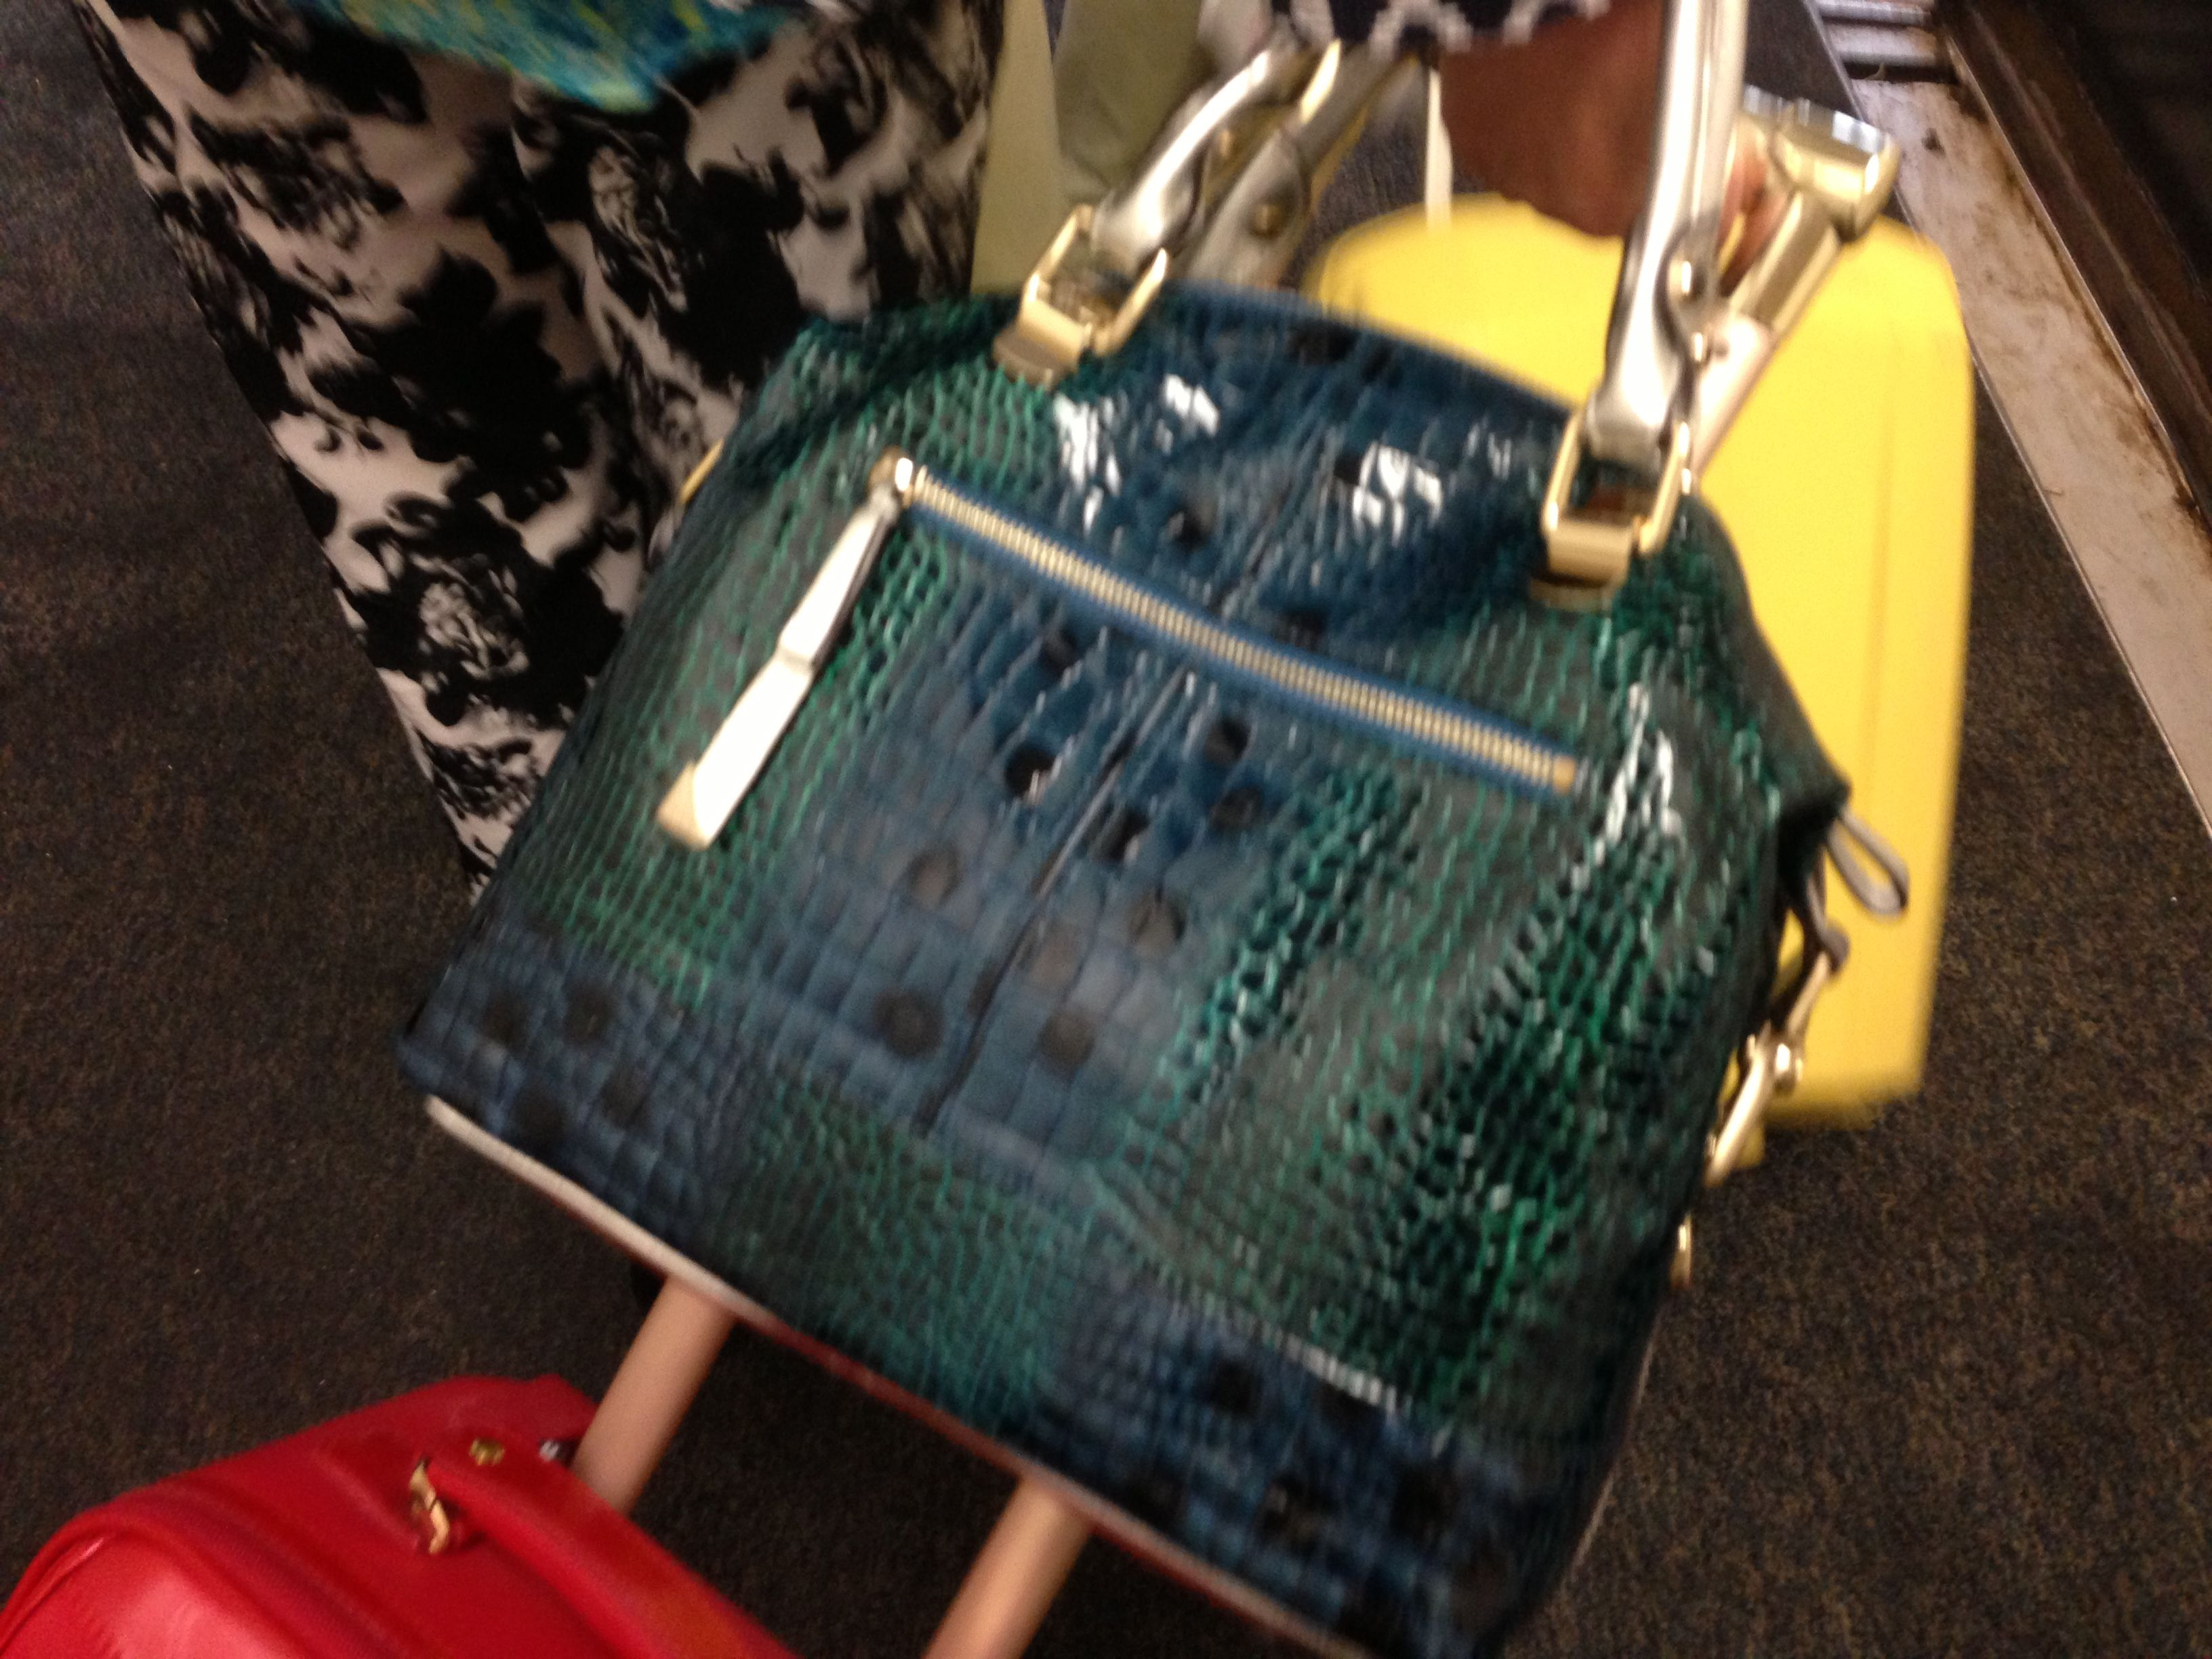 Does anybody know where I can find this handbag?